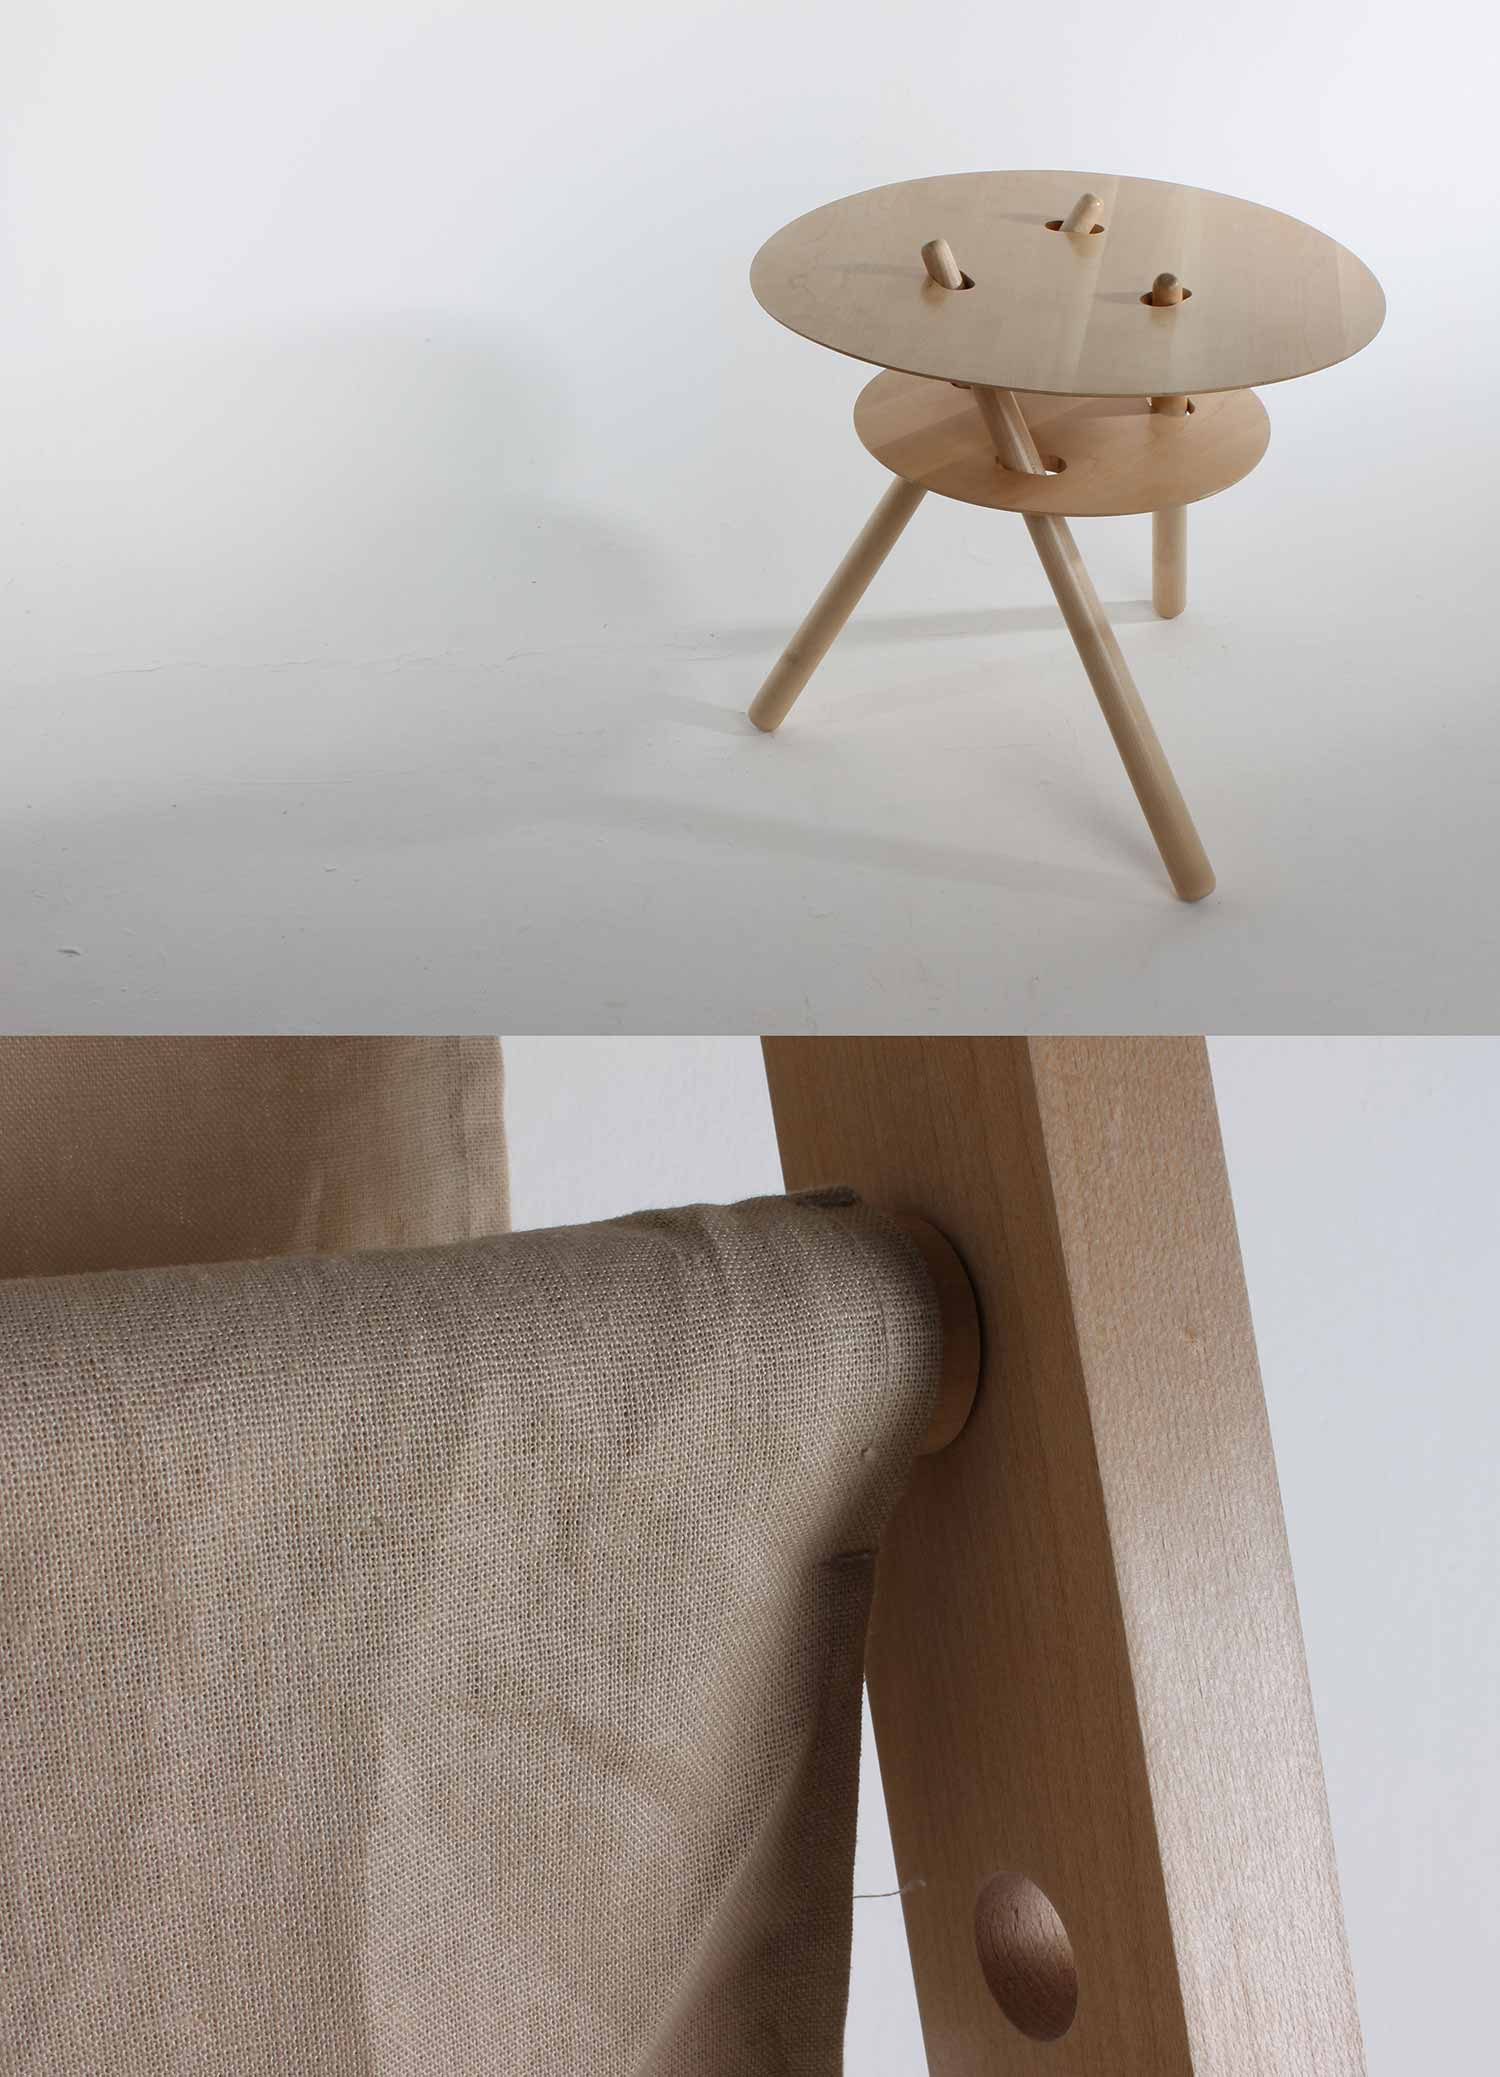 Searlait McCrea Racka Furniture Project